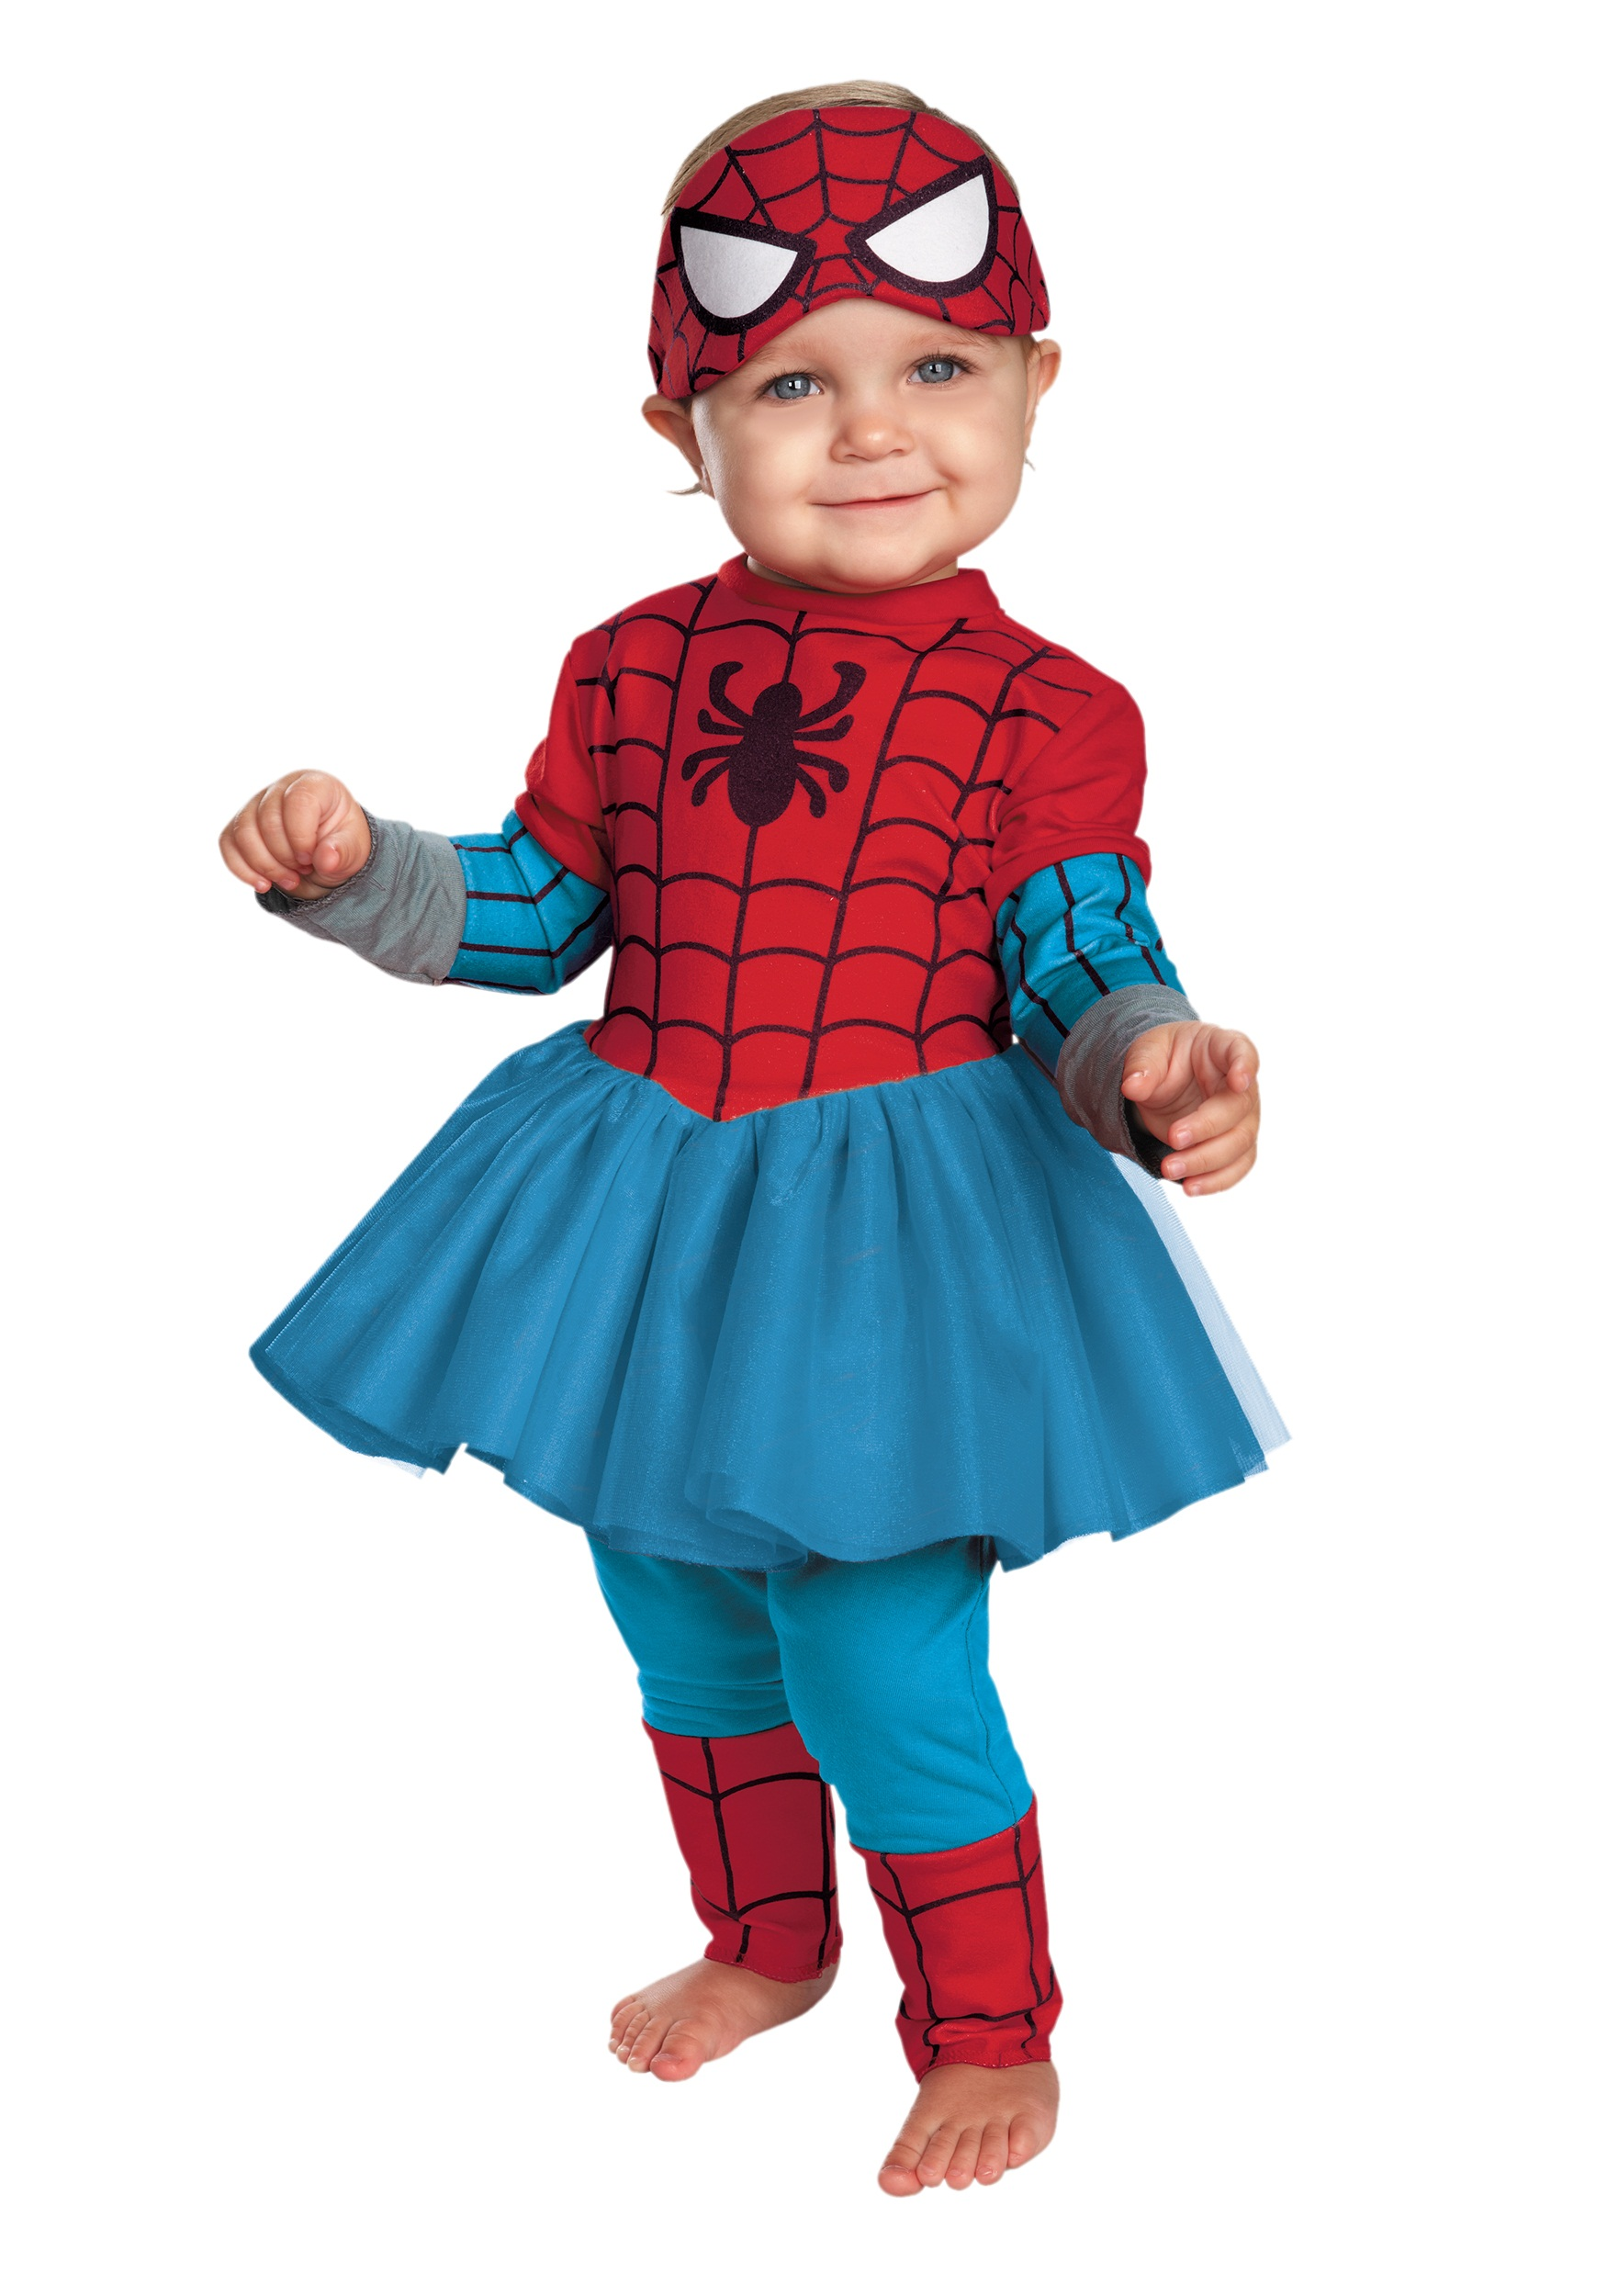 Our baby Halloween costumes come in all sorts of adorable ensembles for boys and girls so they can be a beloved animal like a monkey or lion, or a pop culture characters like Elmo or .